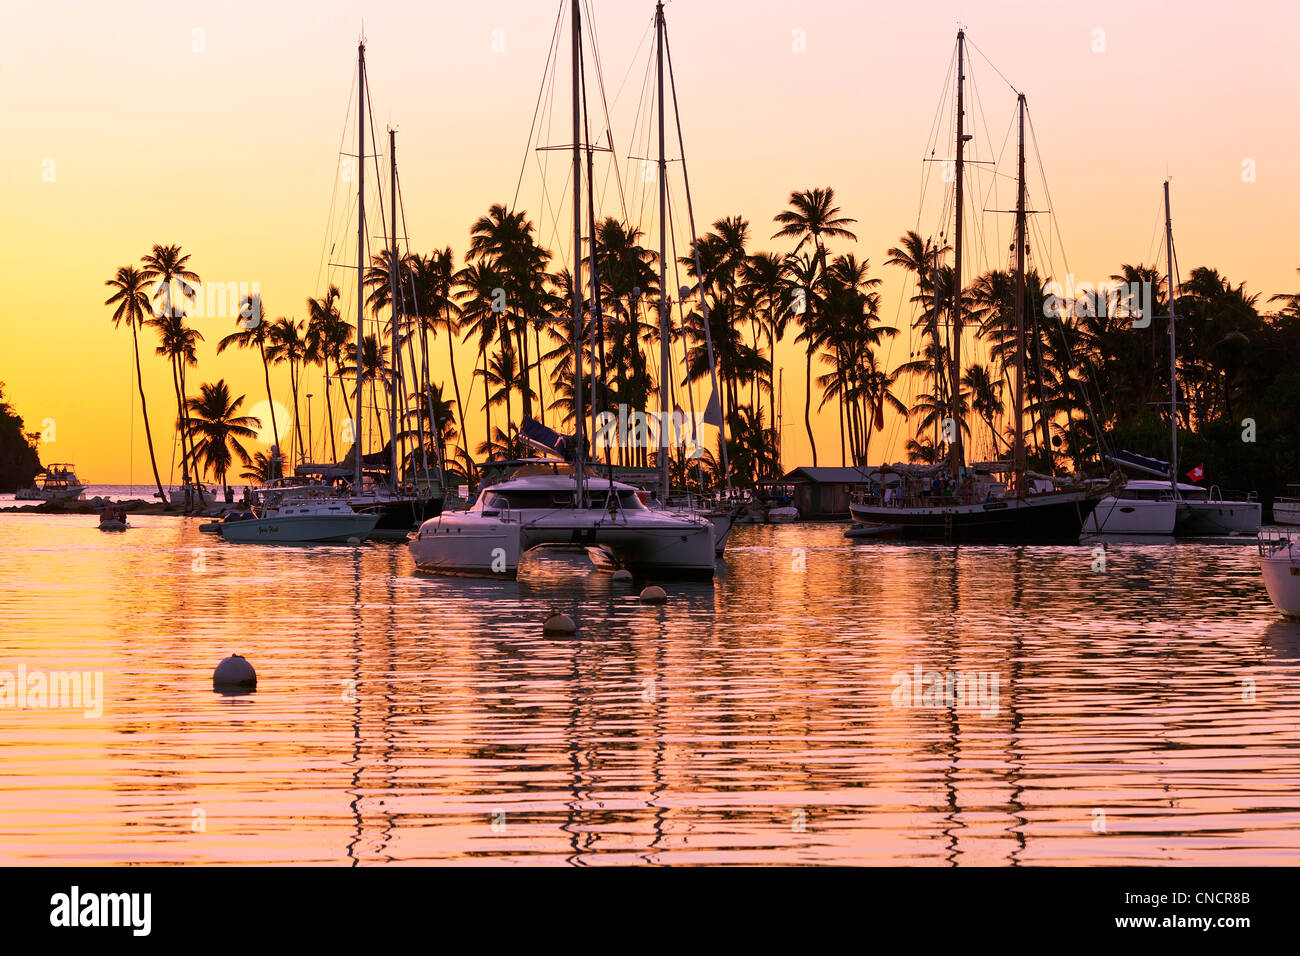 Sainte-lucie, Marigot Bay au coucher du soleil Photo Stock